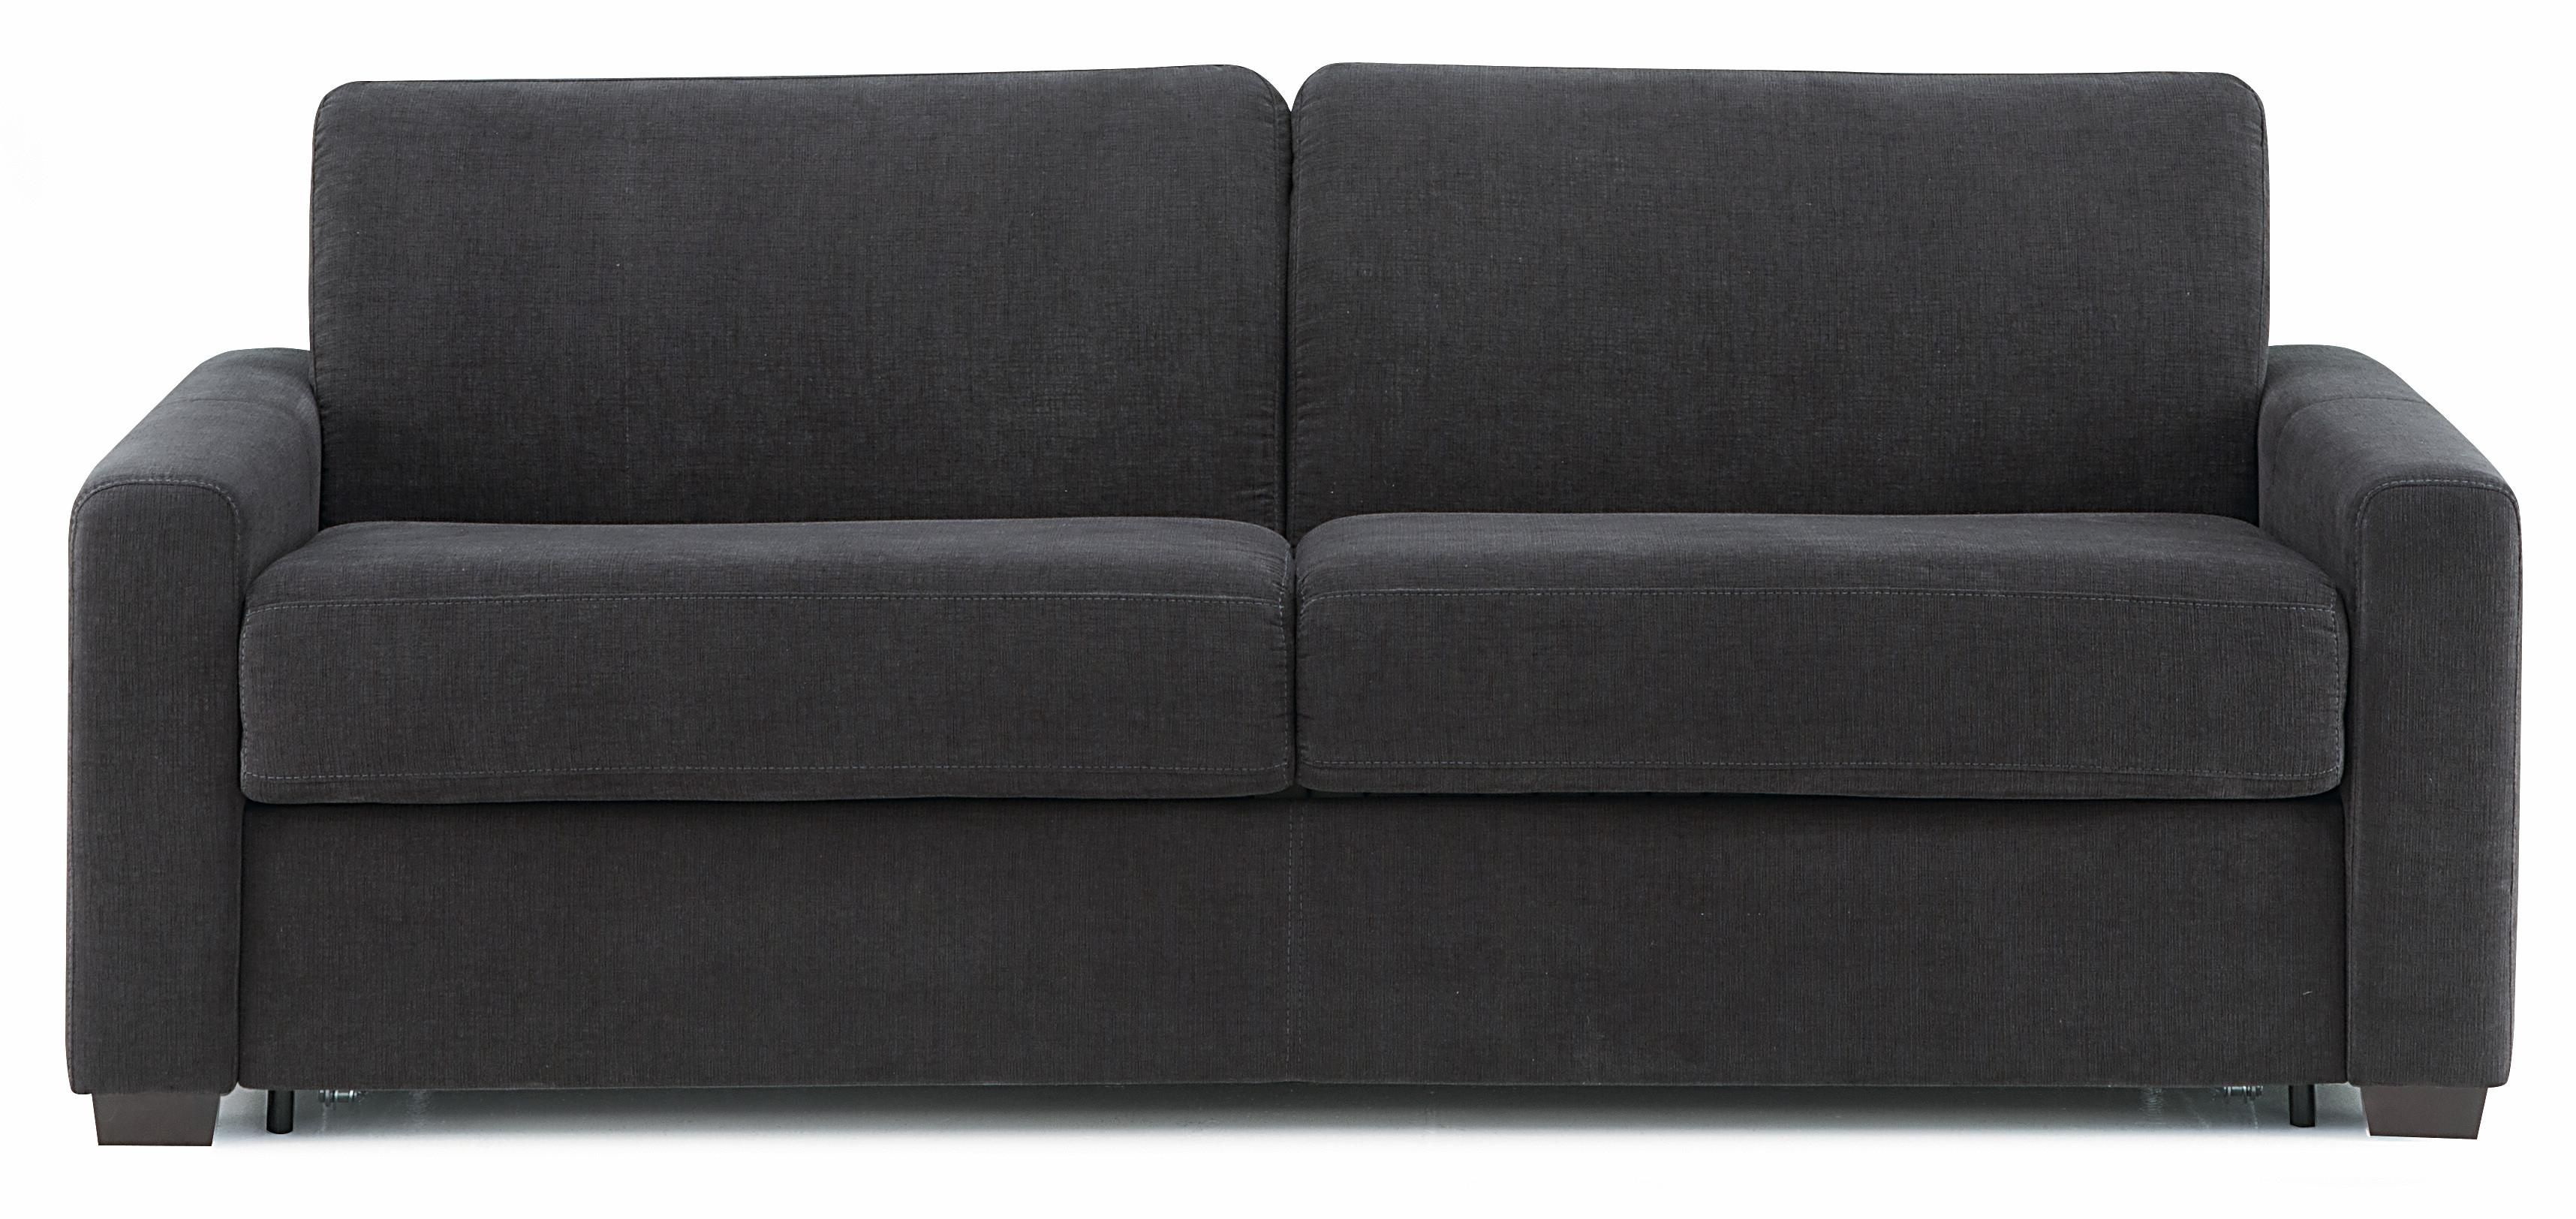 Roommate Super Double Sofa Sleeper By Palliser